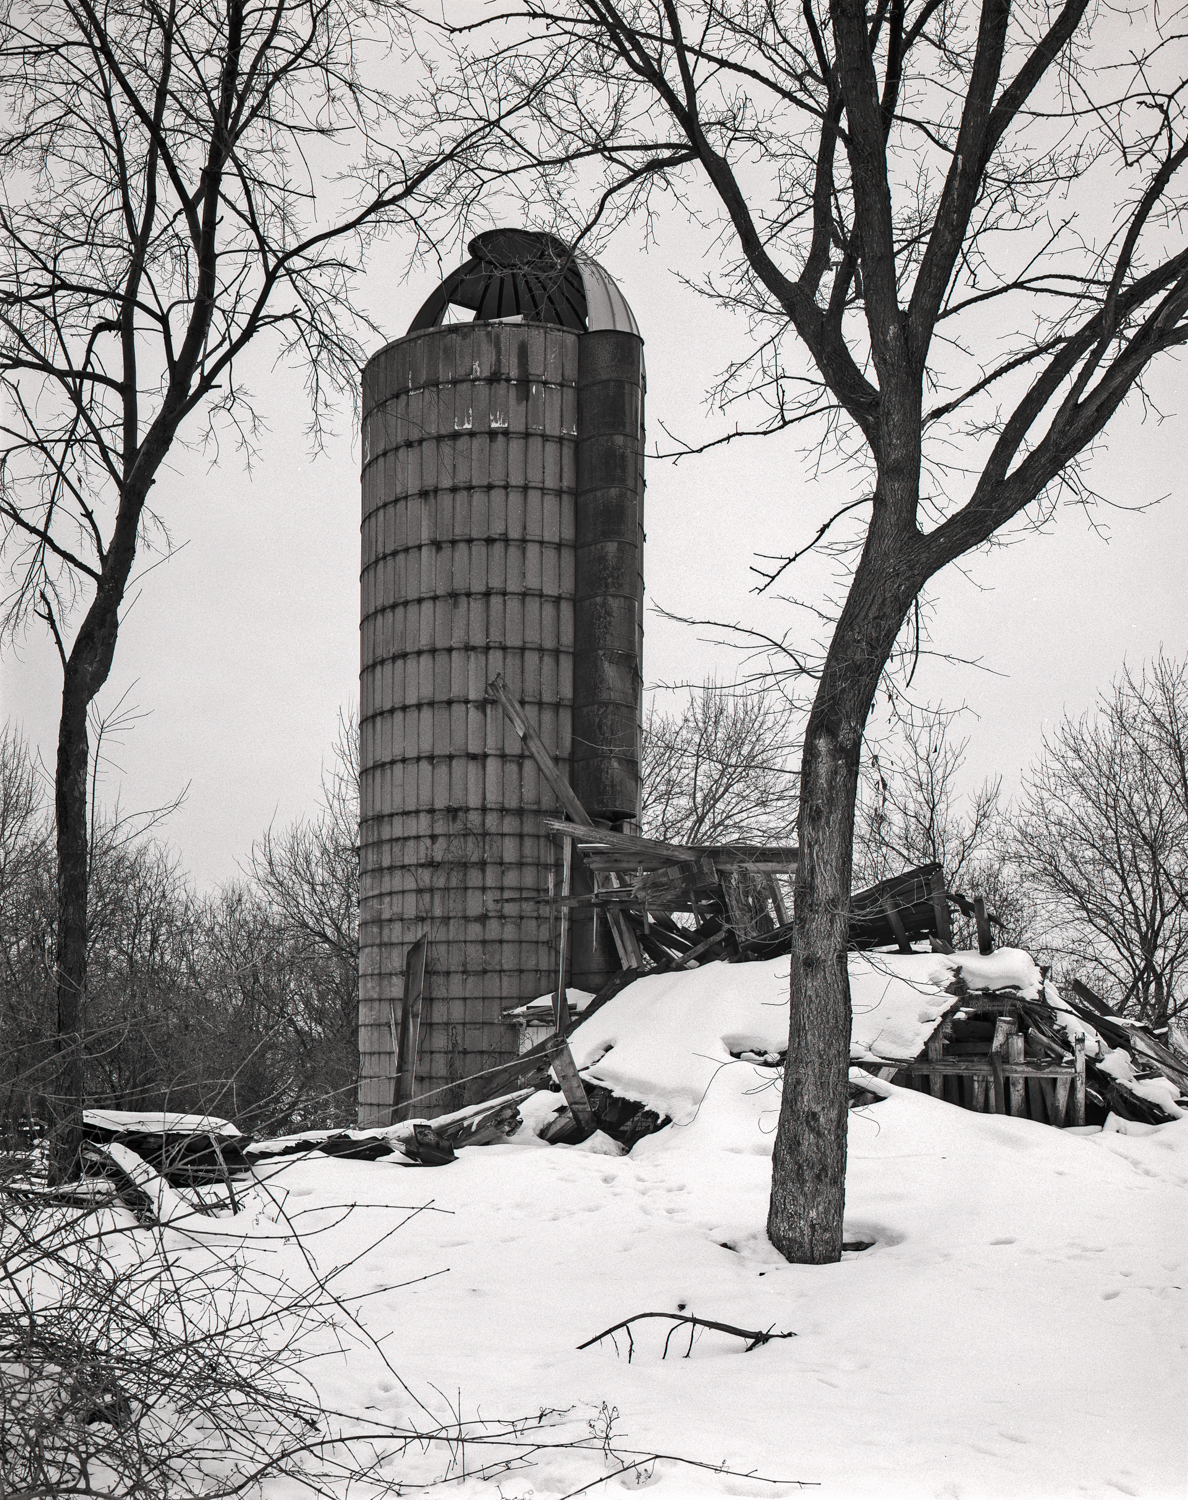 William Patrick Farmstead Silo Illinois 2001